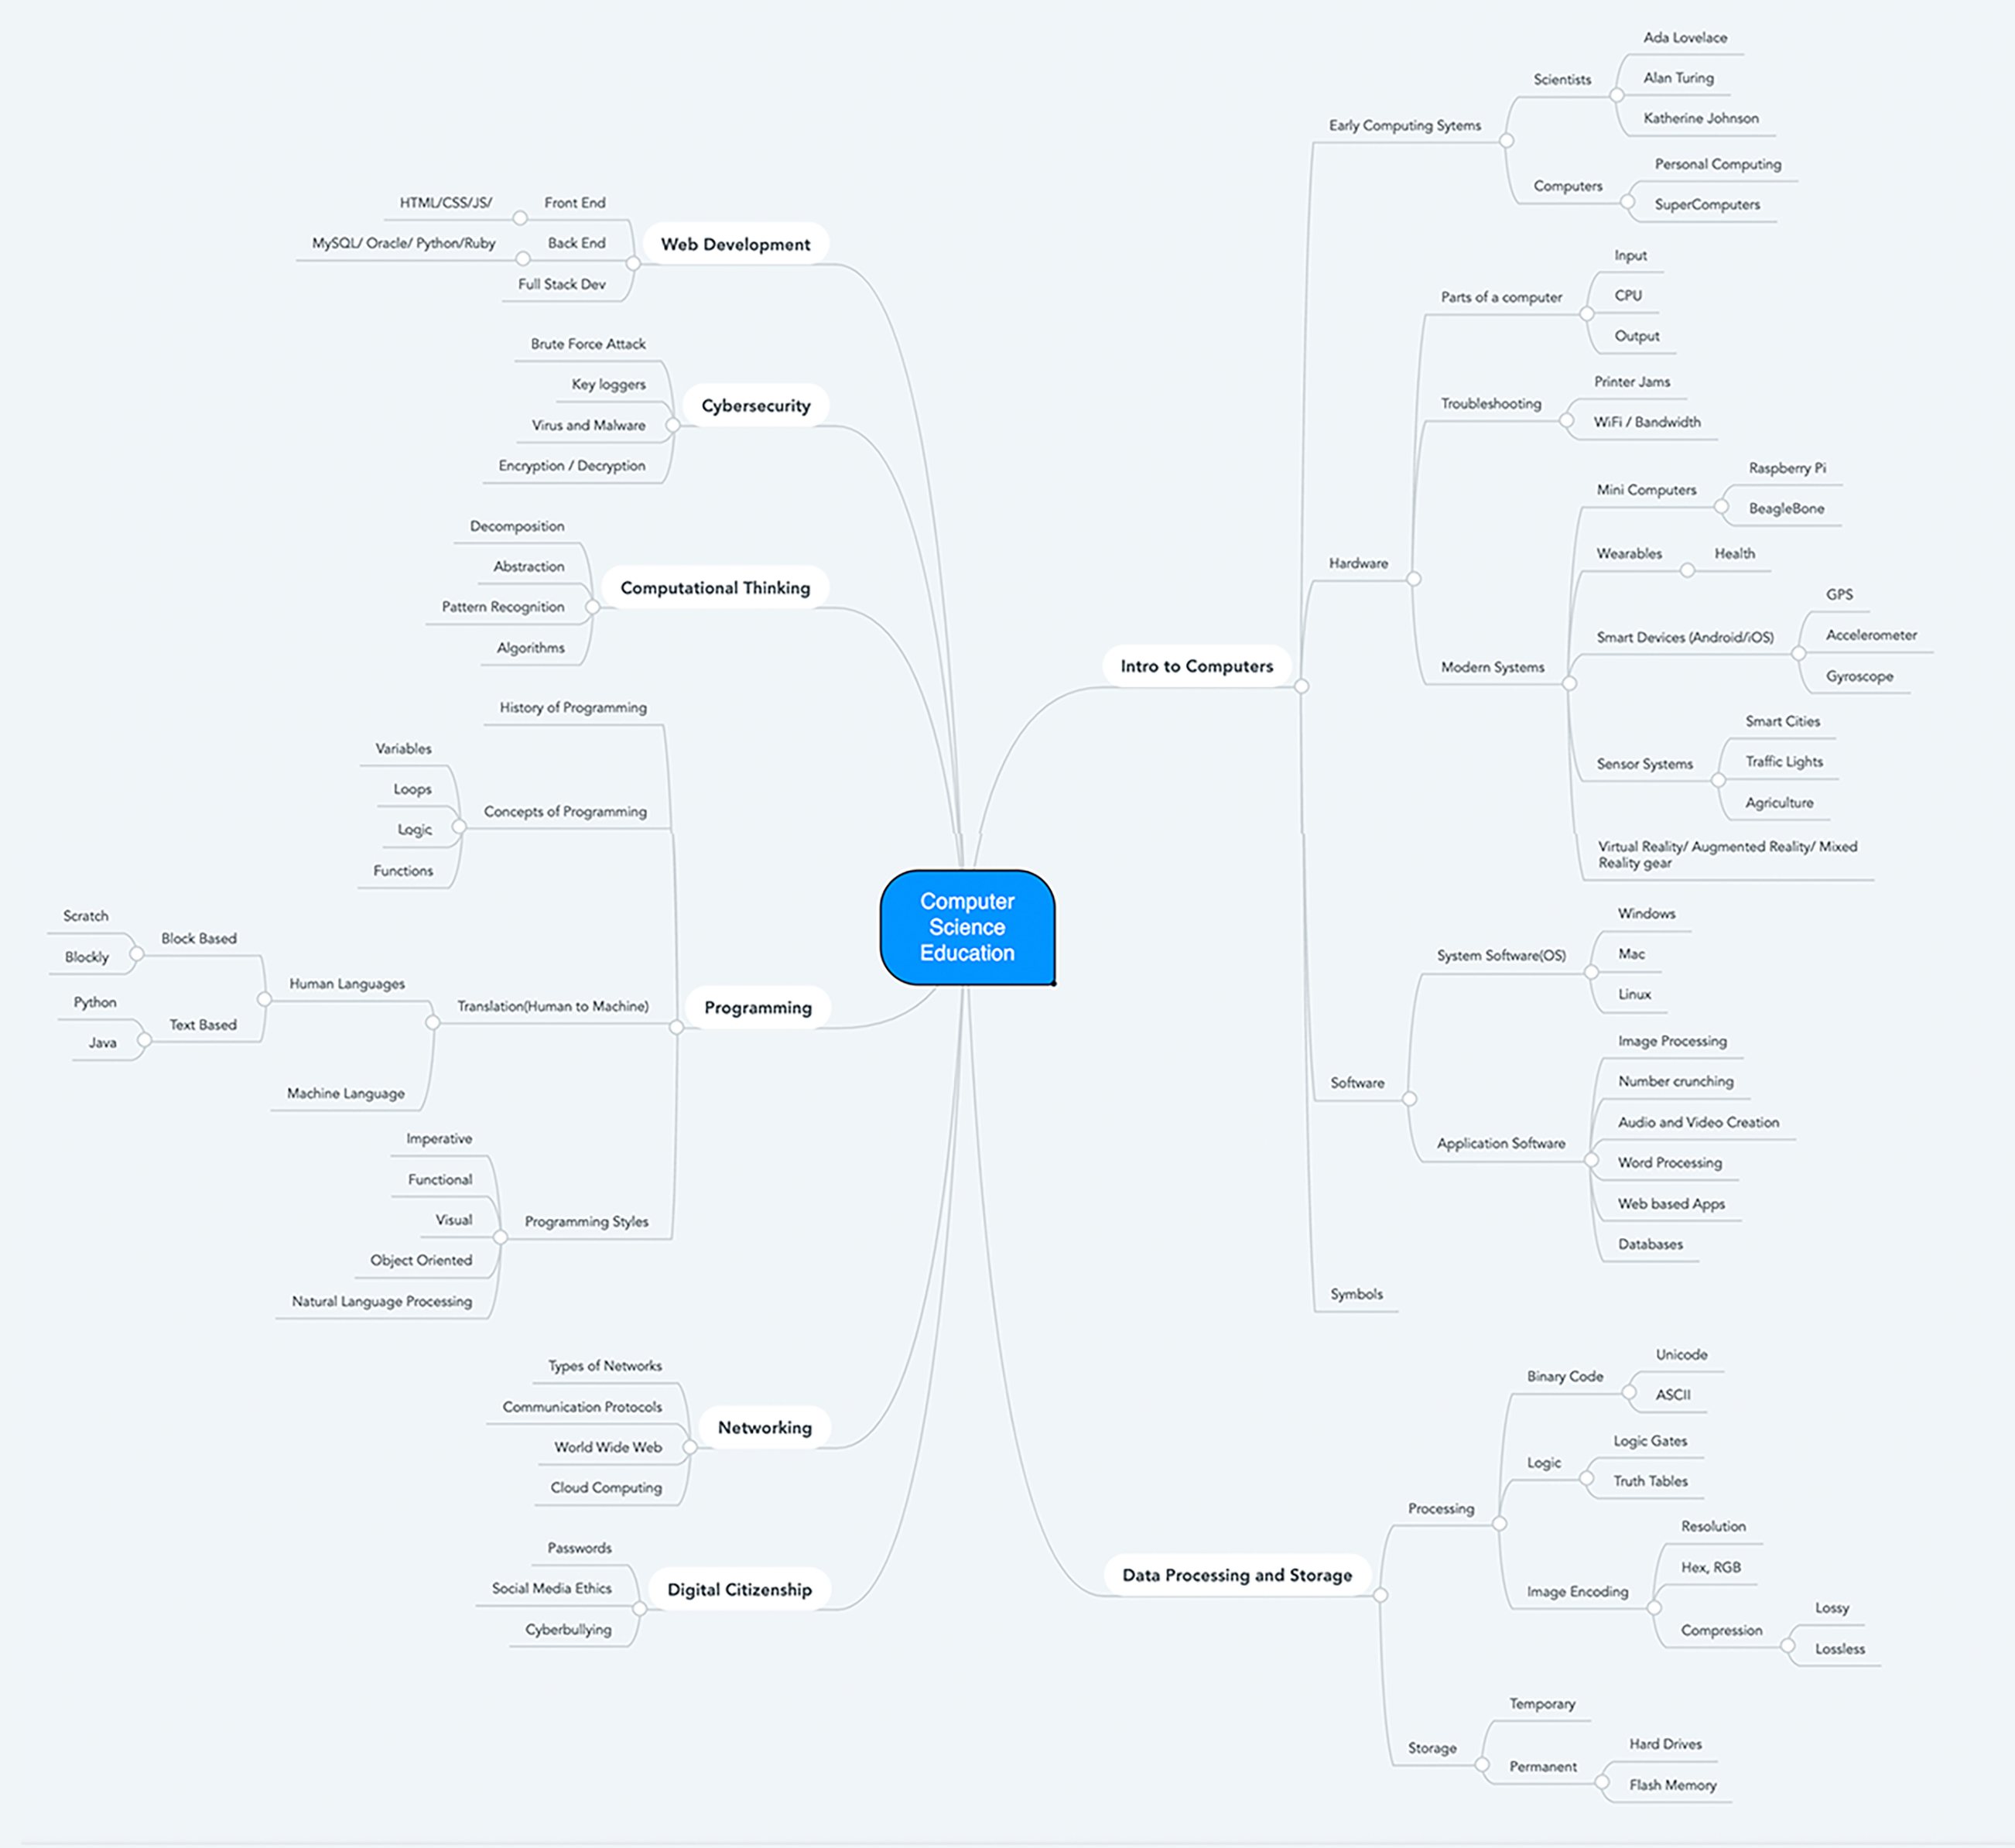 MindMap of CS ed topics